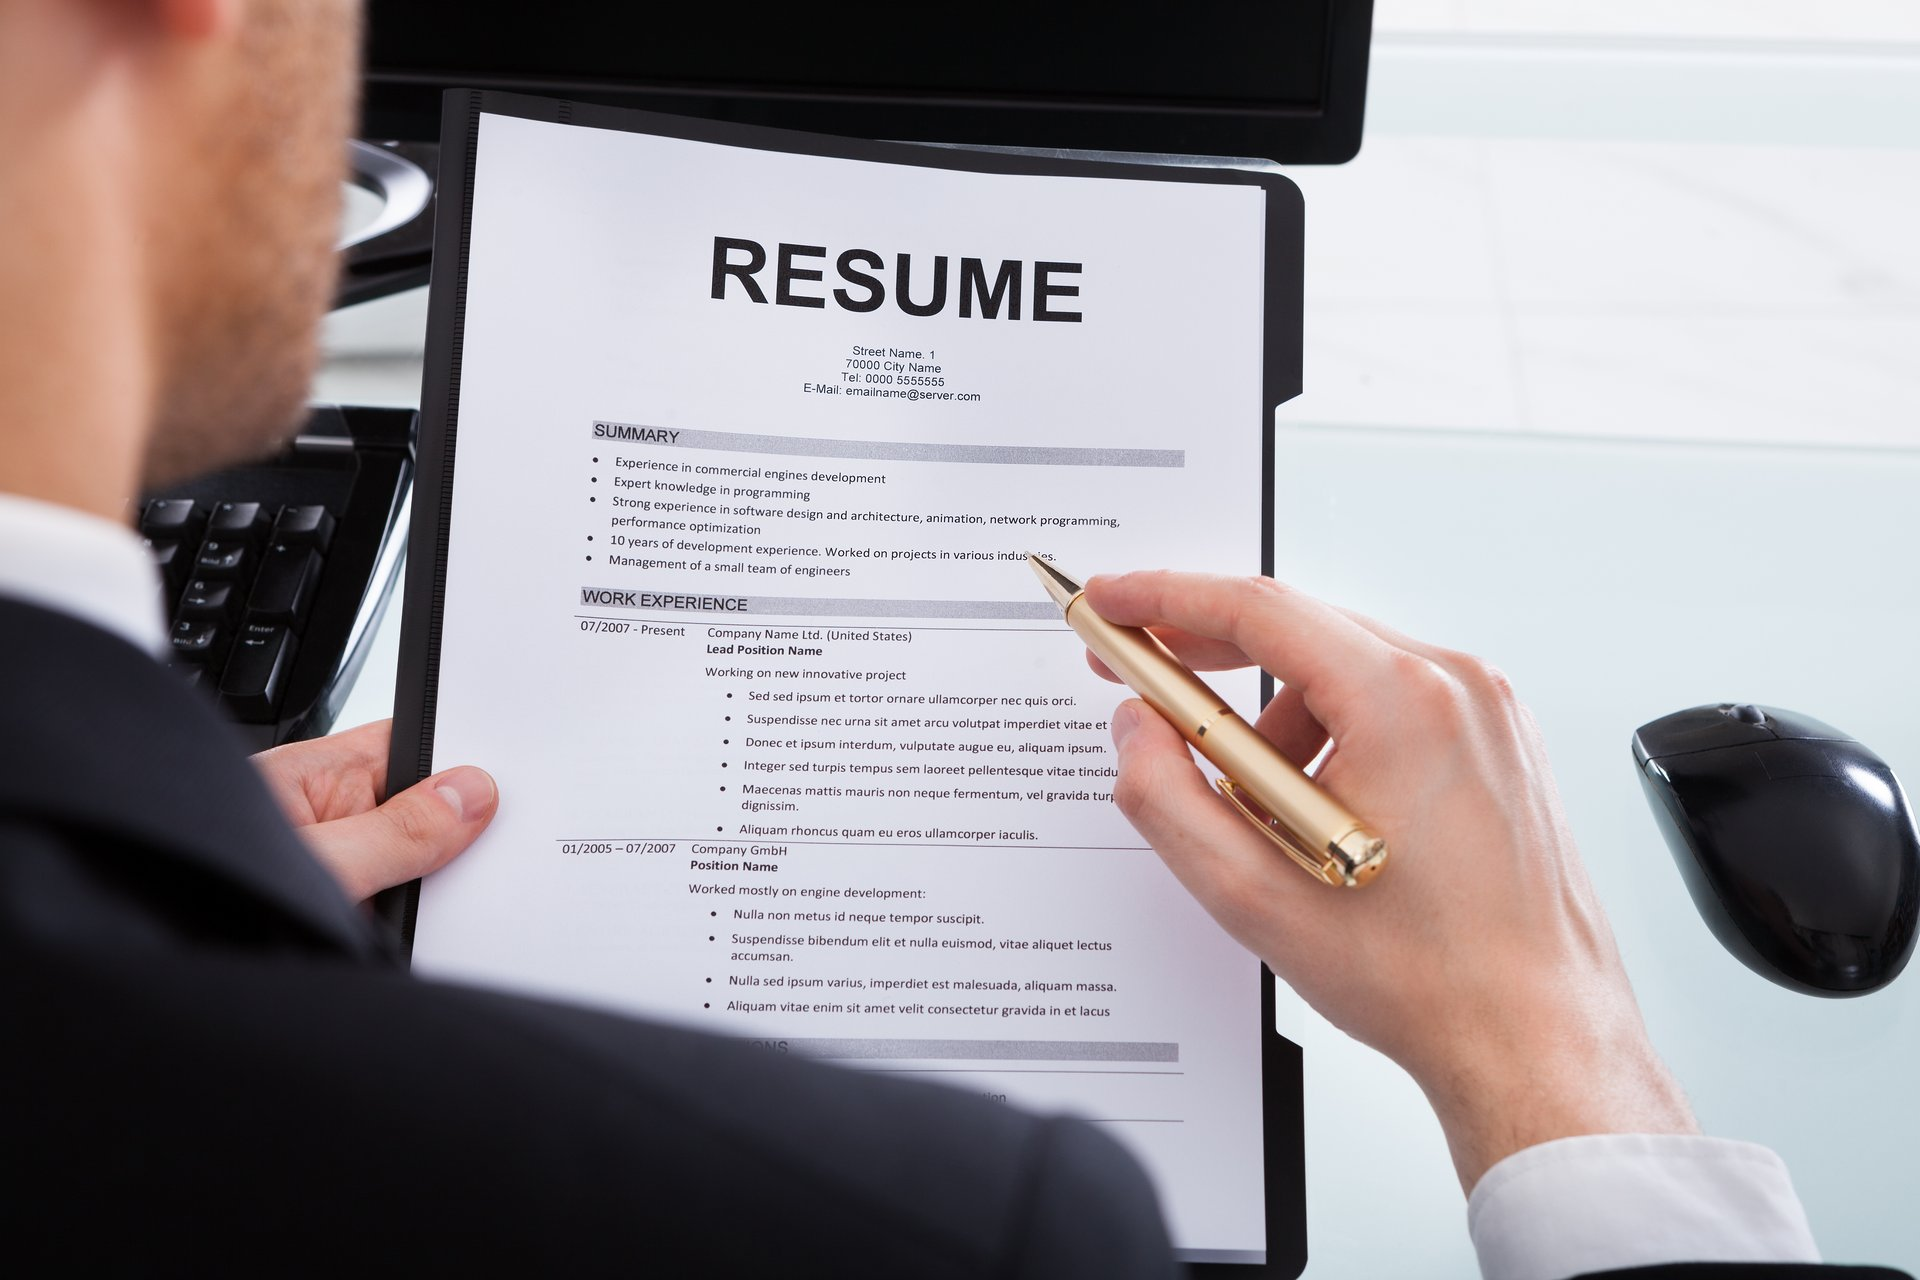 Resume revision